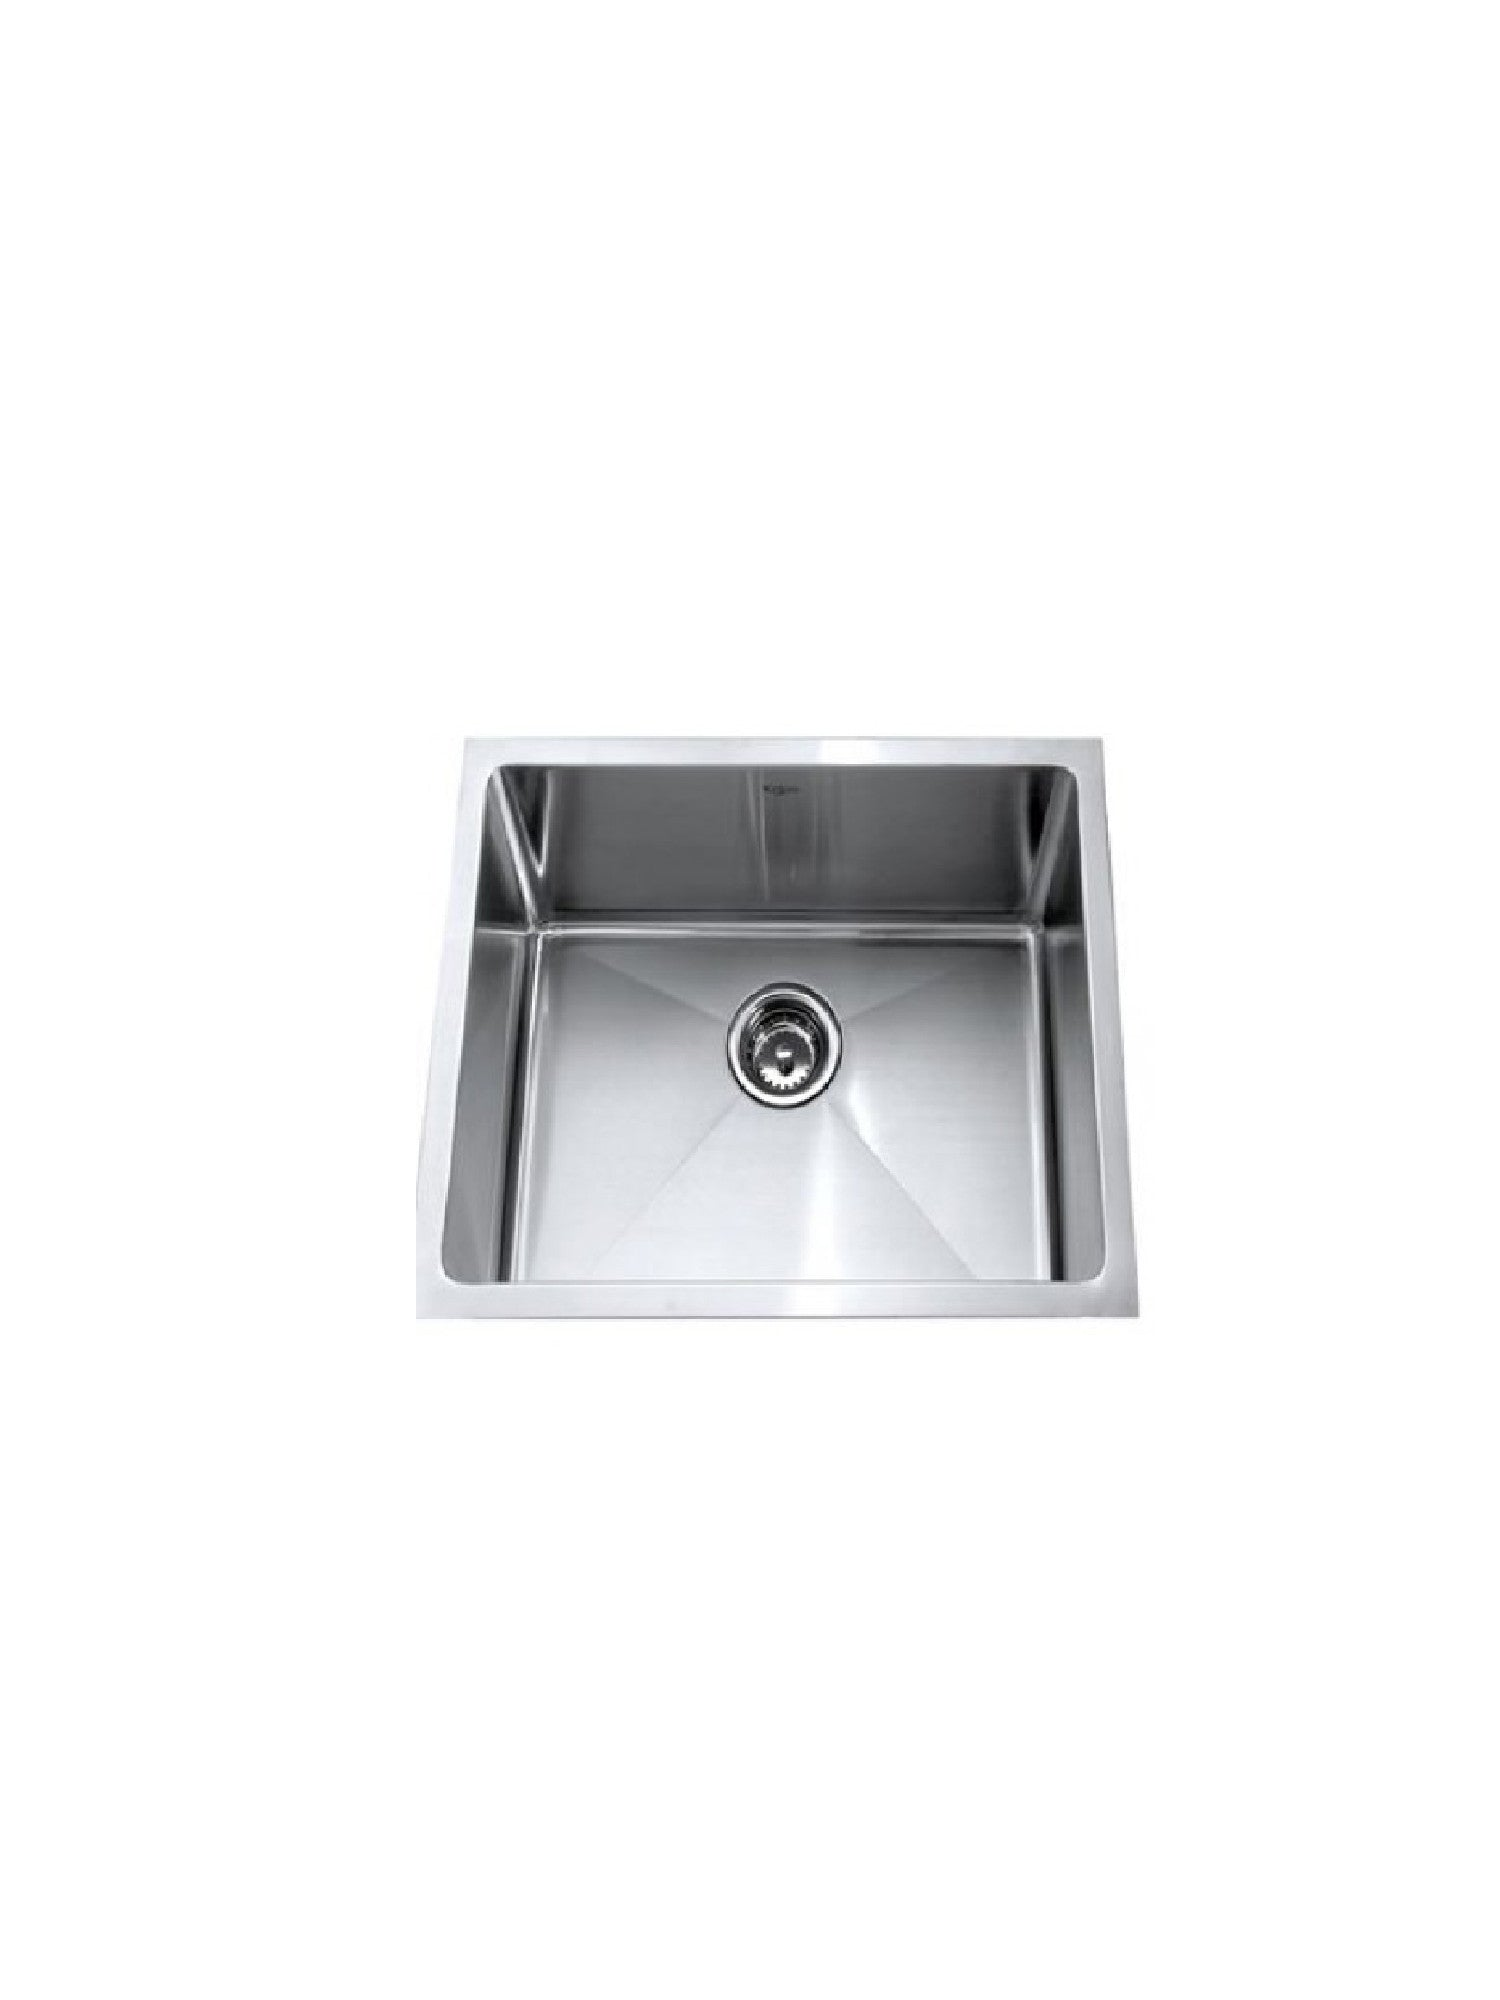 Single bowl kitchen sink sqm‐450